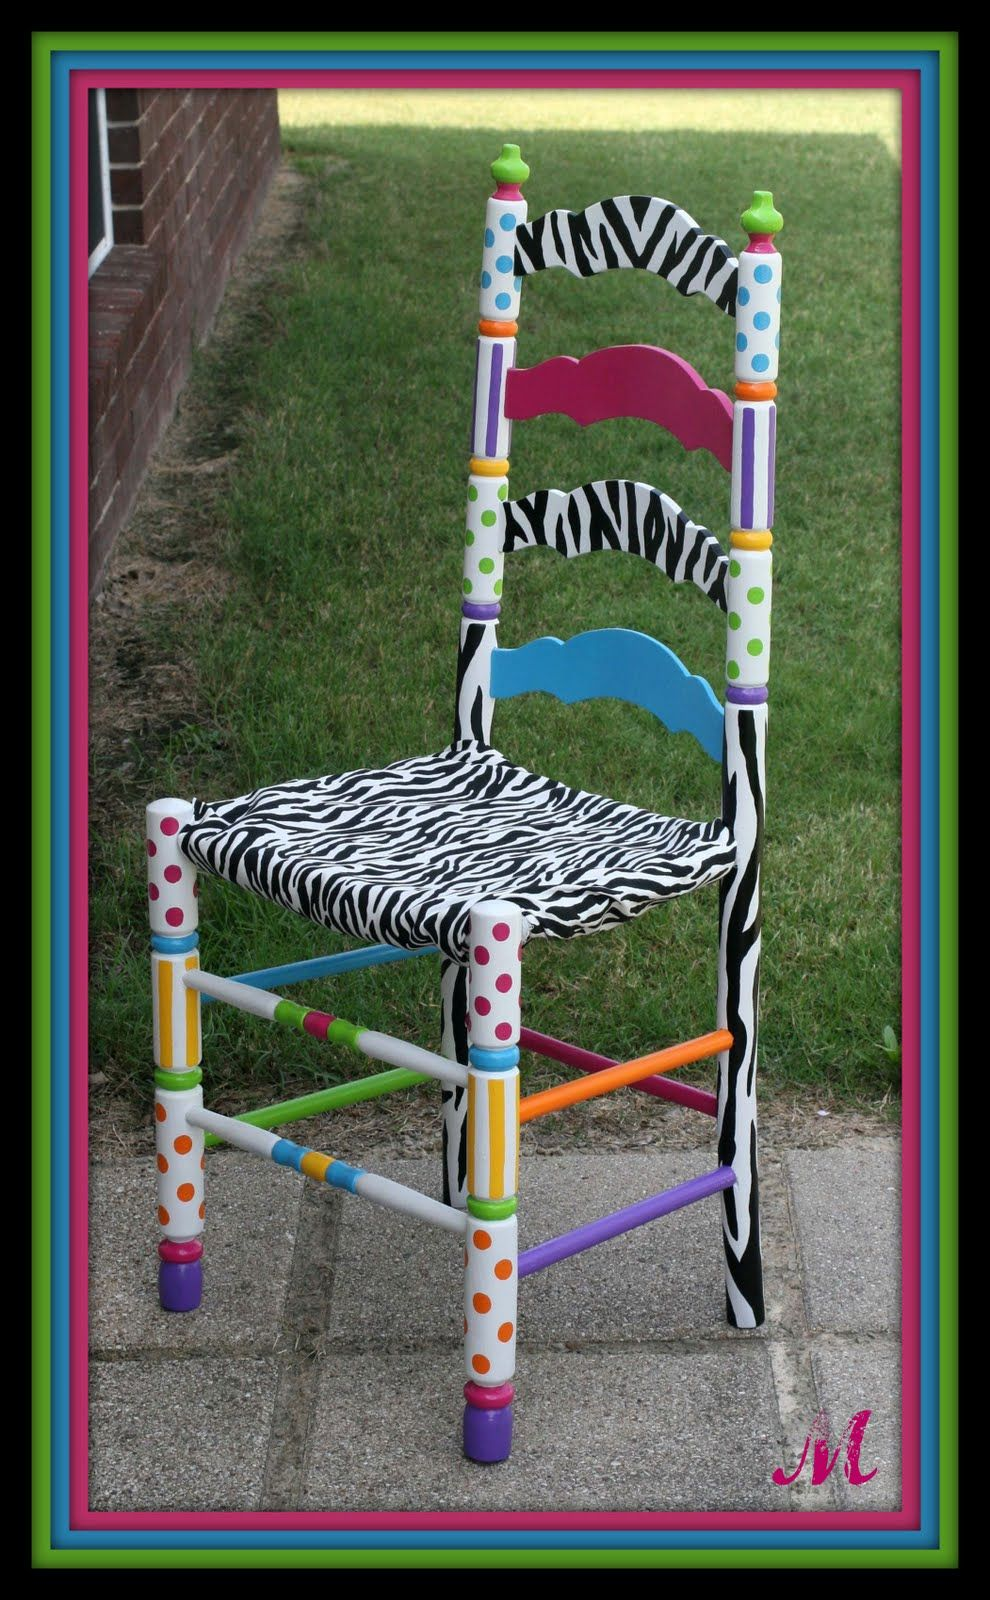 Painted chairs pinterest - Funky Hand Painted Furniture Funky Custom Hand Painted Chair Black White Painted Chair With Pink